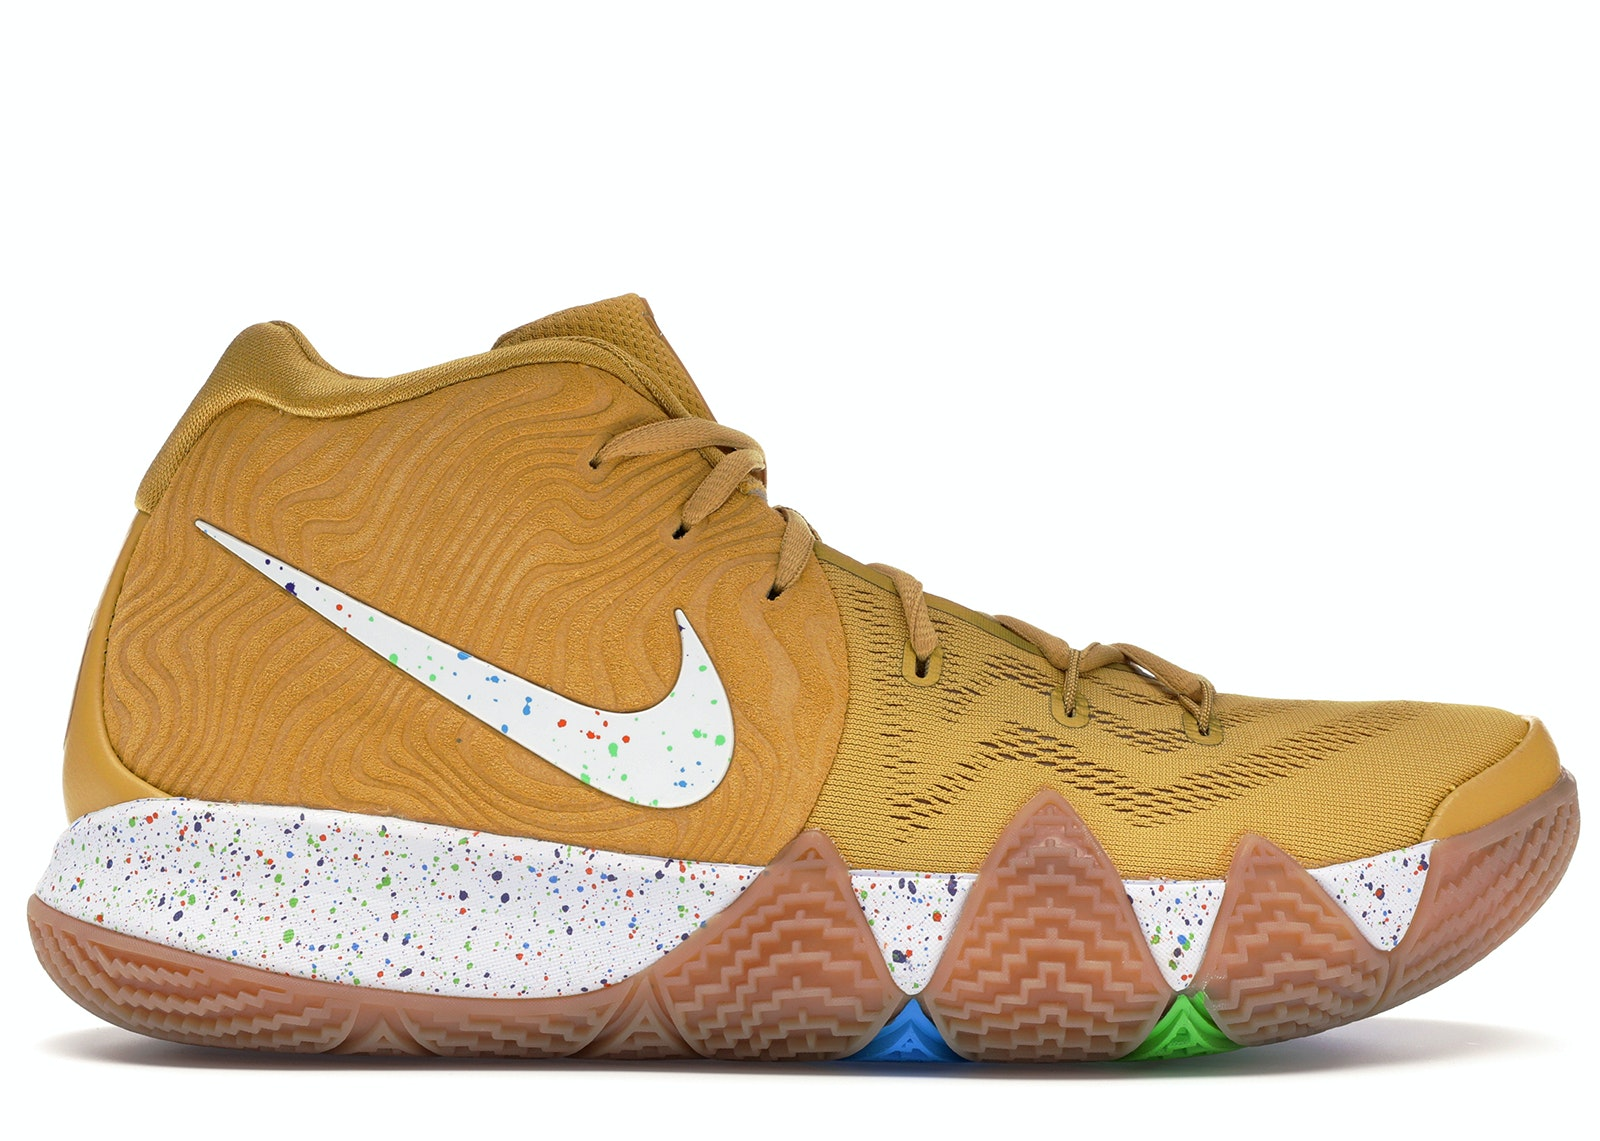 Kyrie 4 Cinnamon Toast Crunch